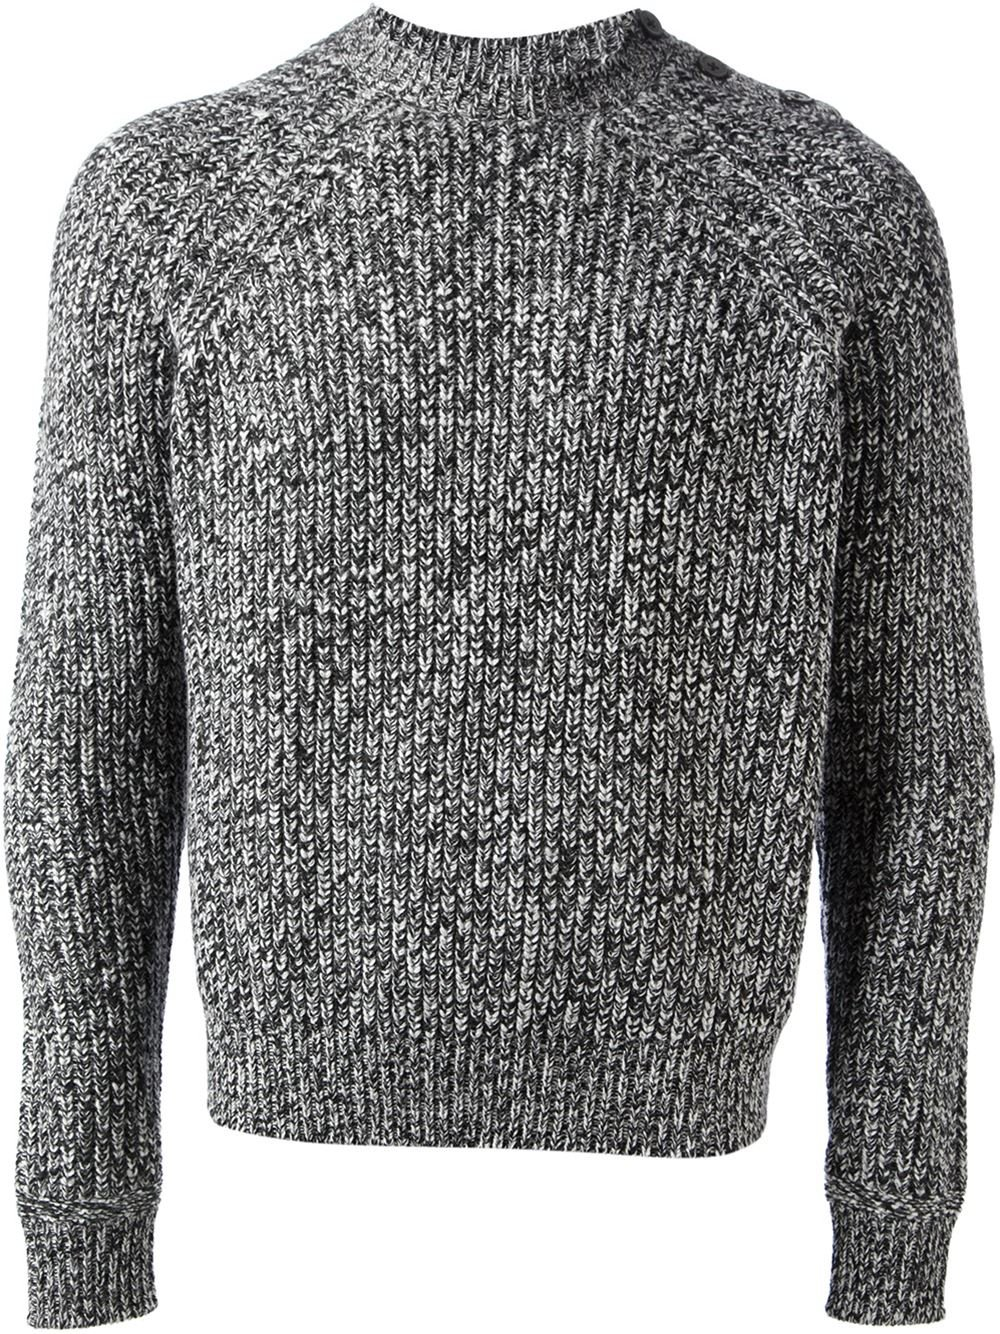 Lyst Carven Thick Knit Sweater In Black For Men